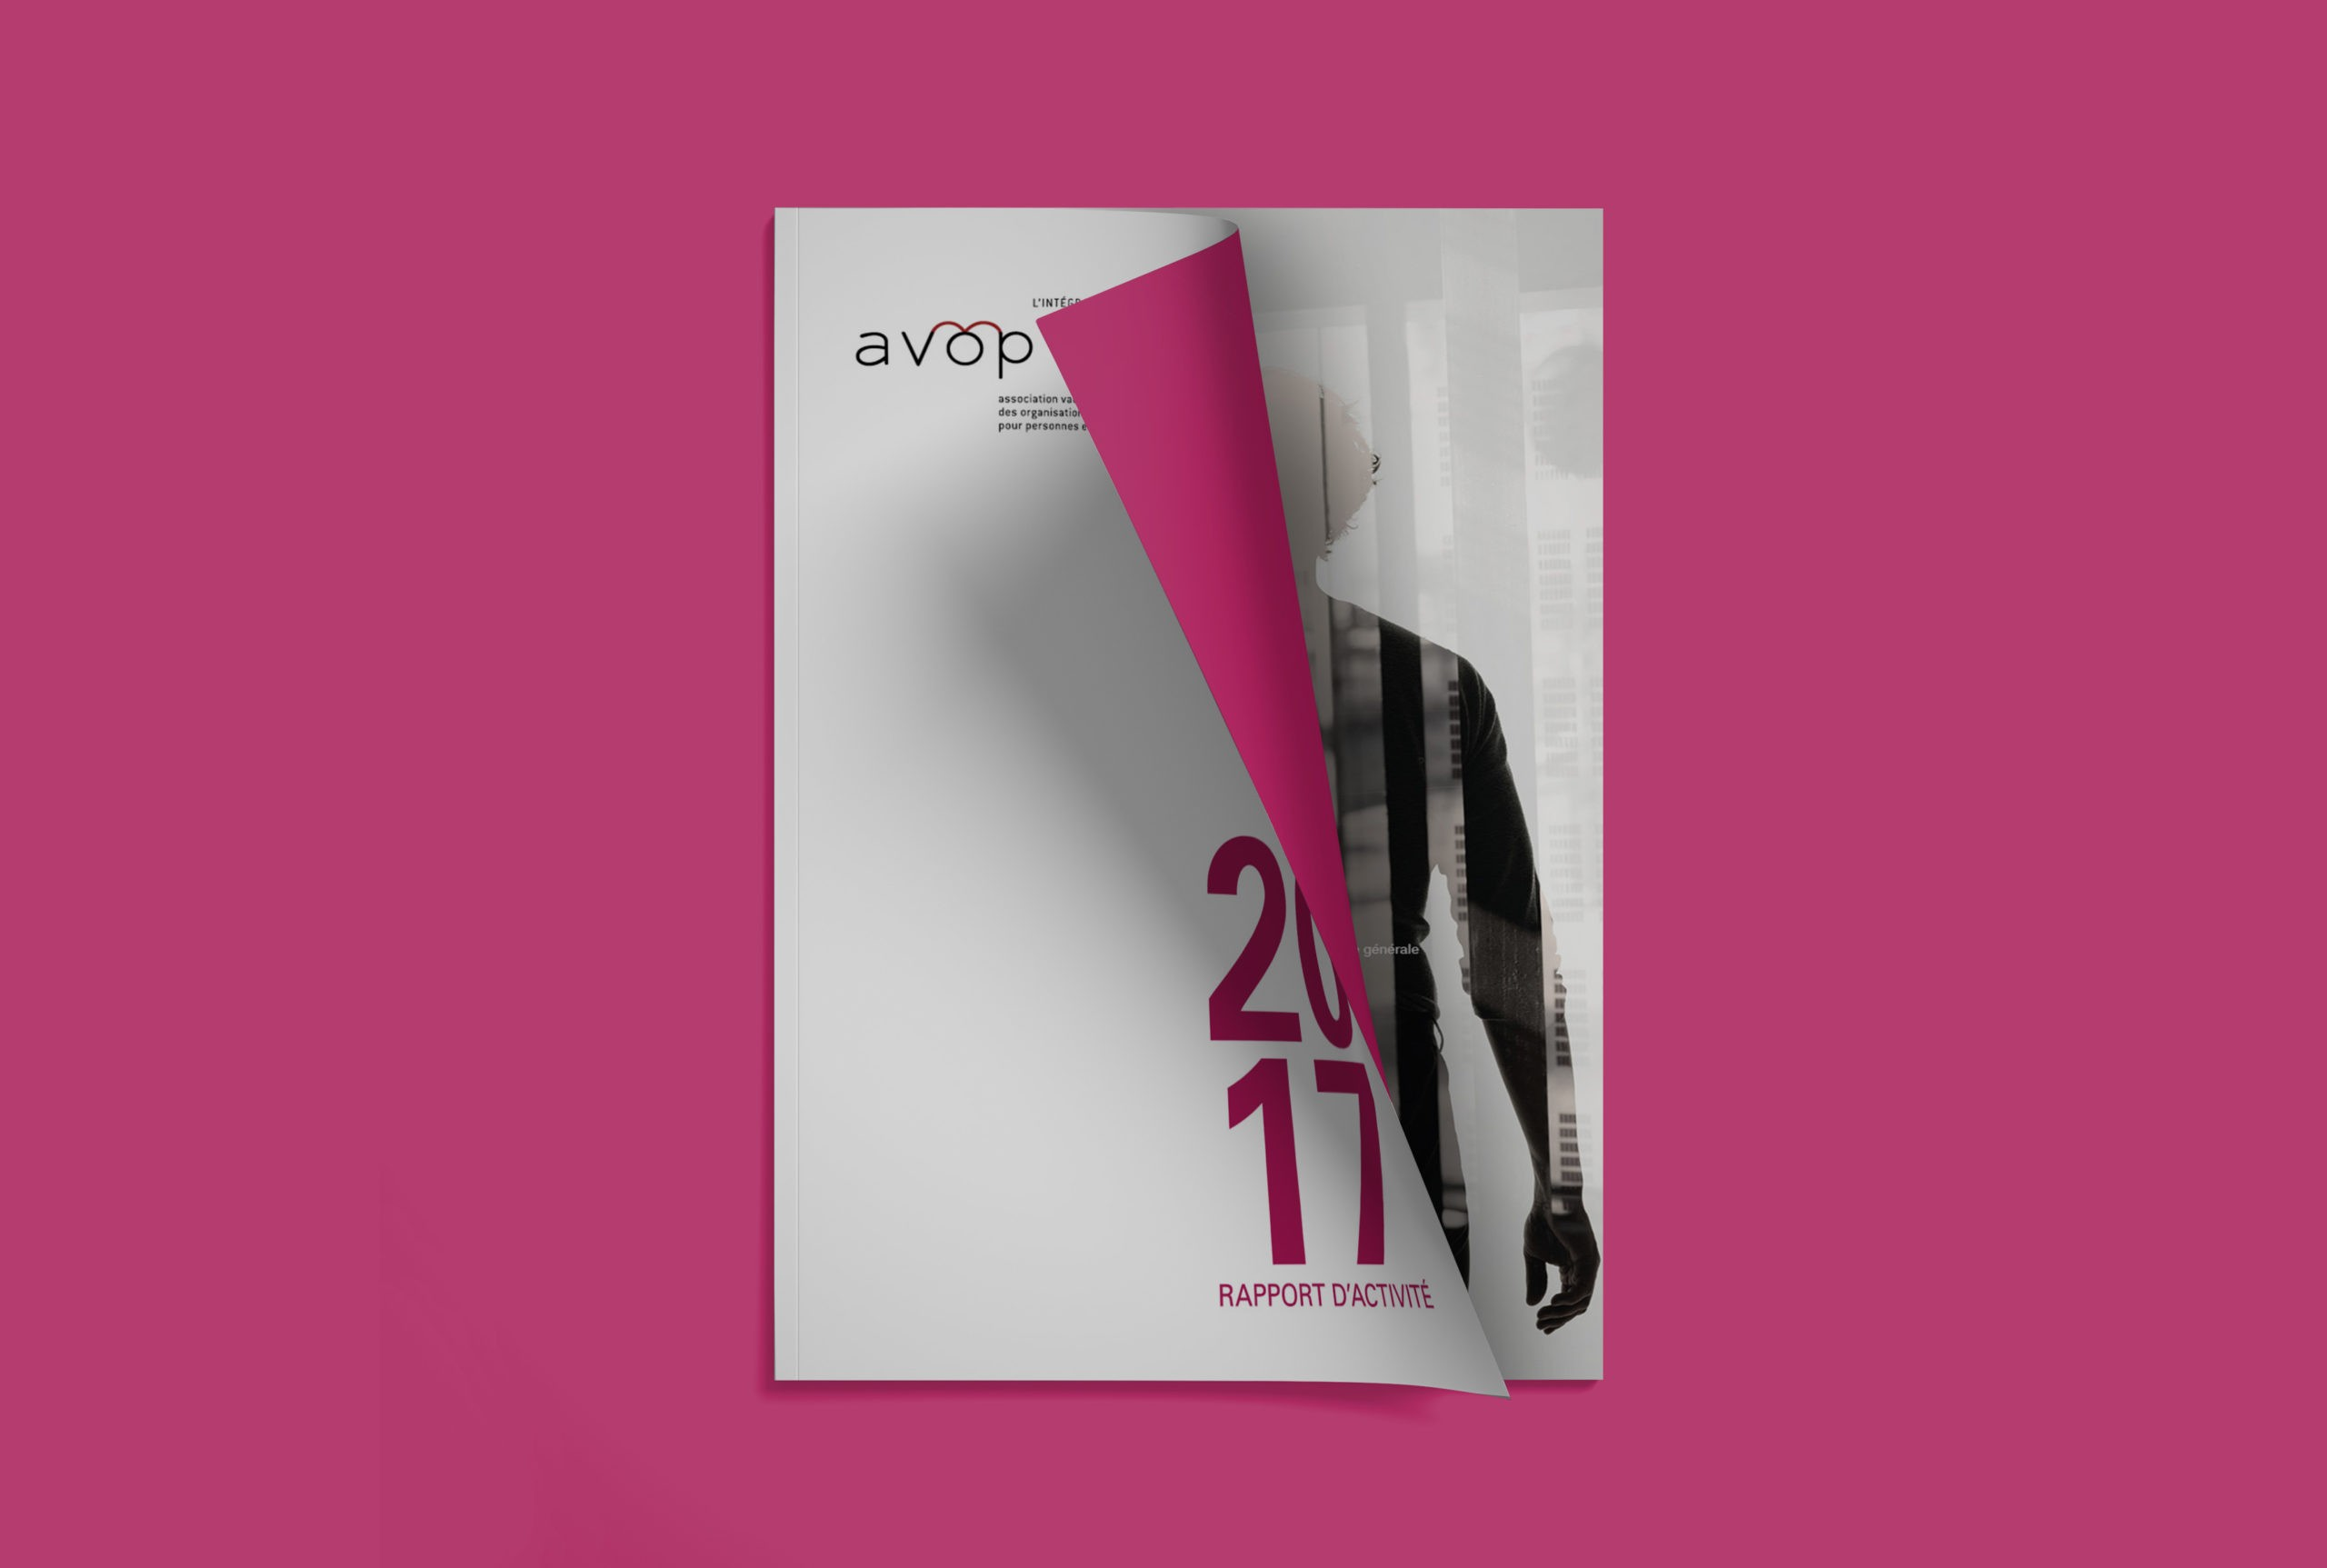 couv_avop_2017 - we studio